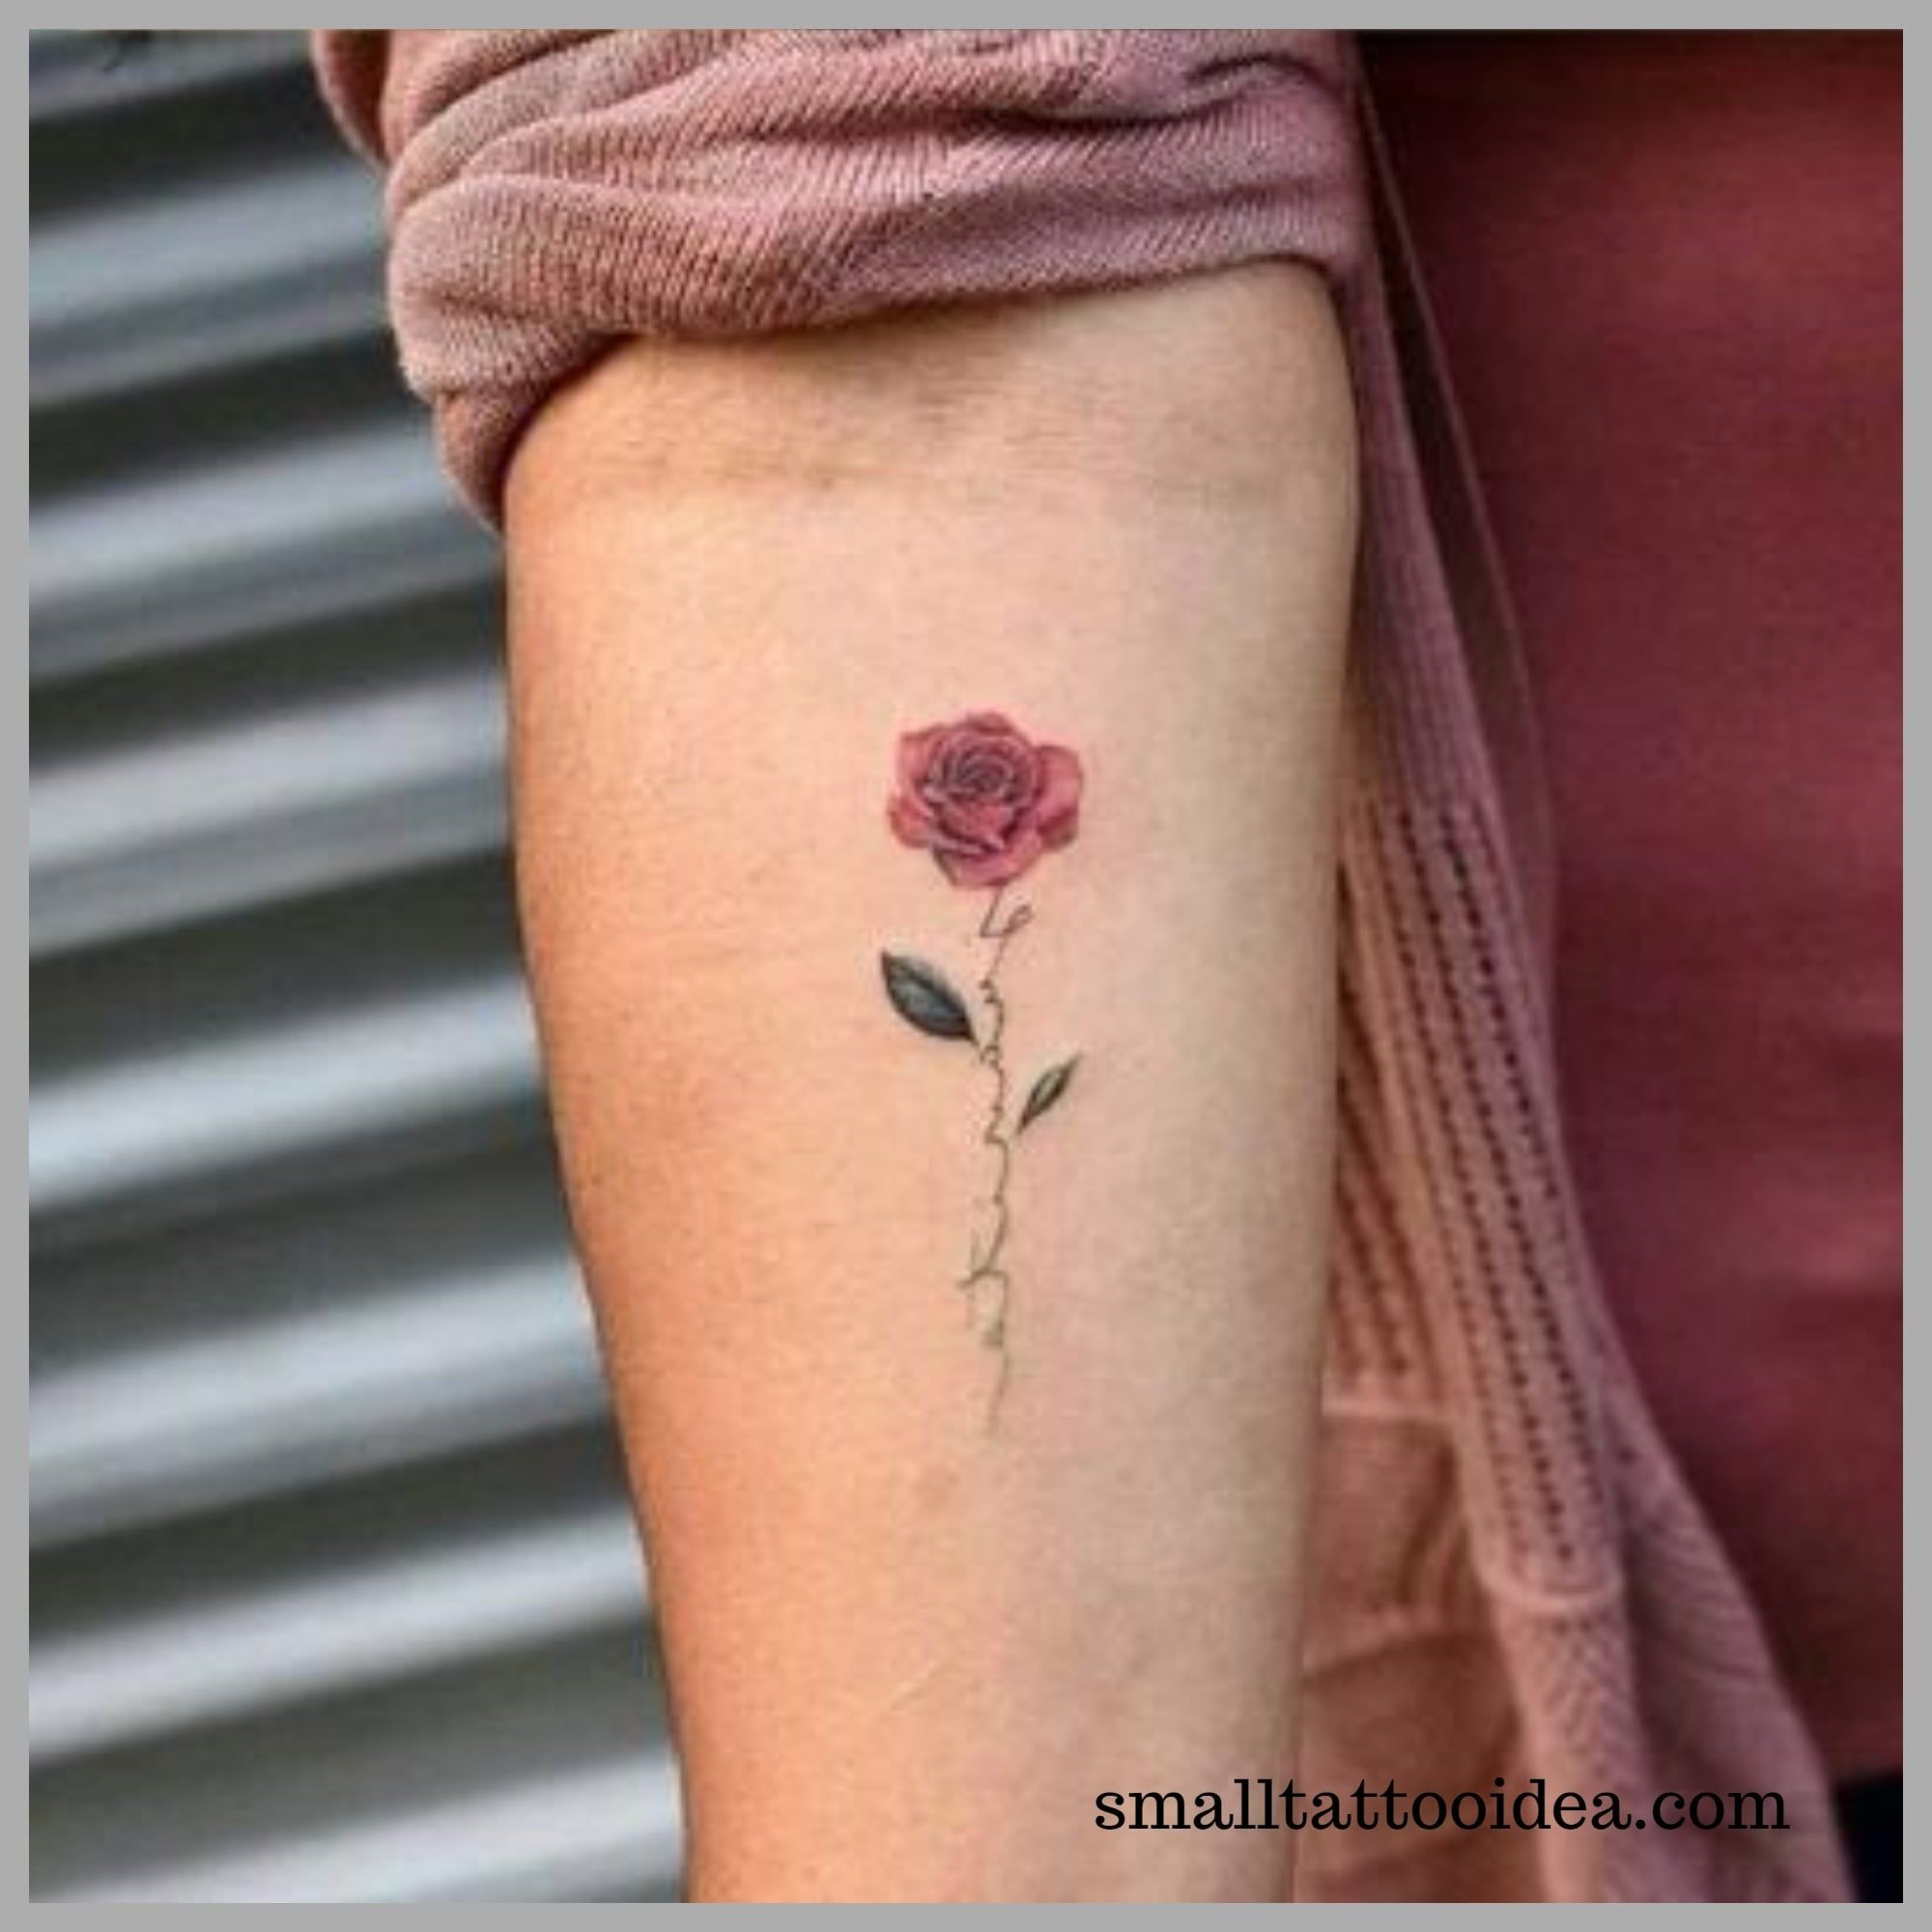 35 Small Red Rose Tattoo Ideas For Girls Tattoo Minimal Tattoo Hand Tattoos For Women Tattoos